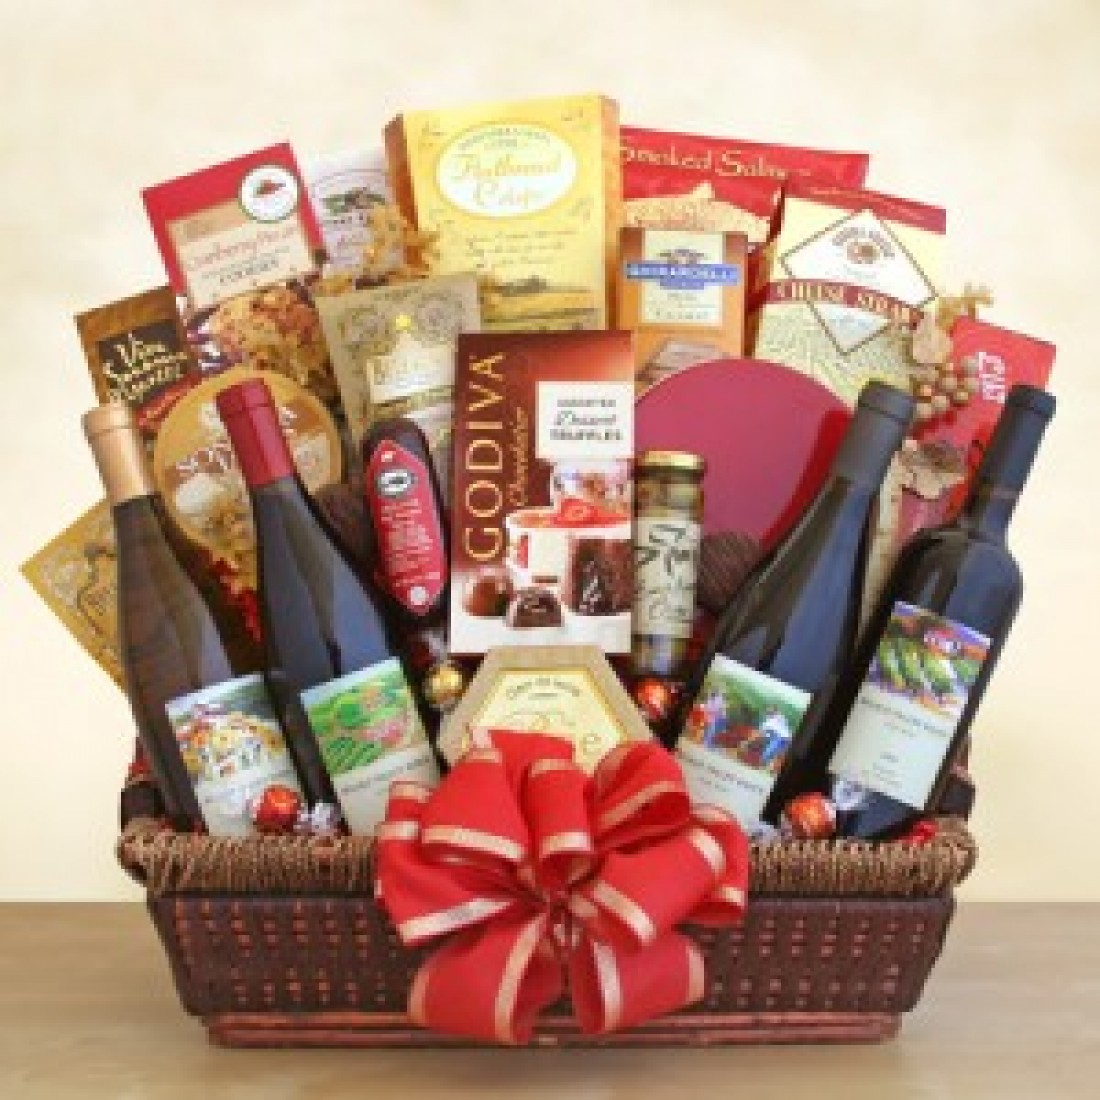 California Splendor Gourmet Foods